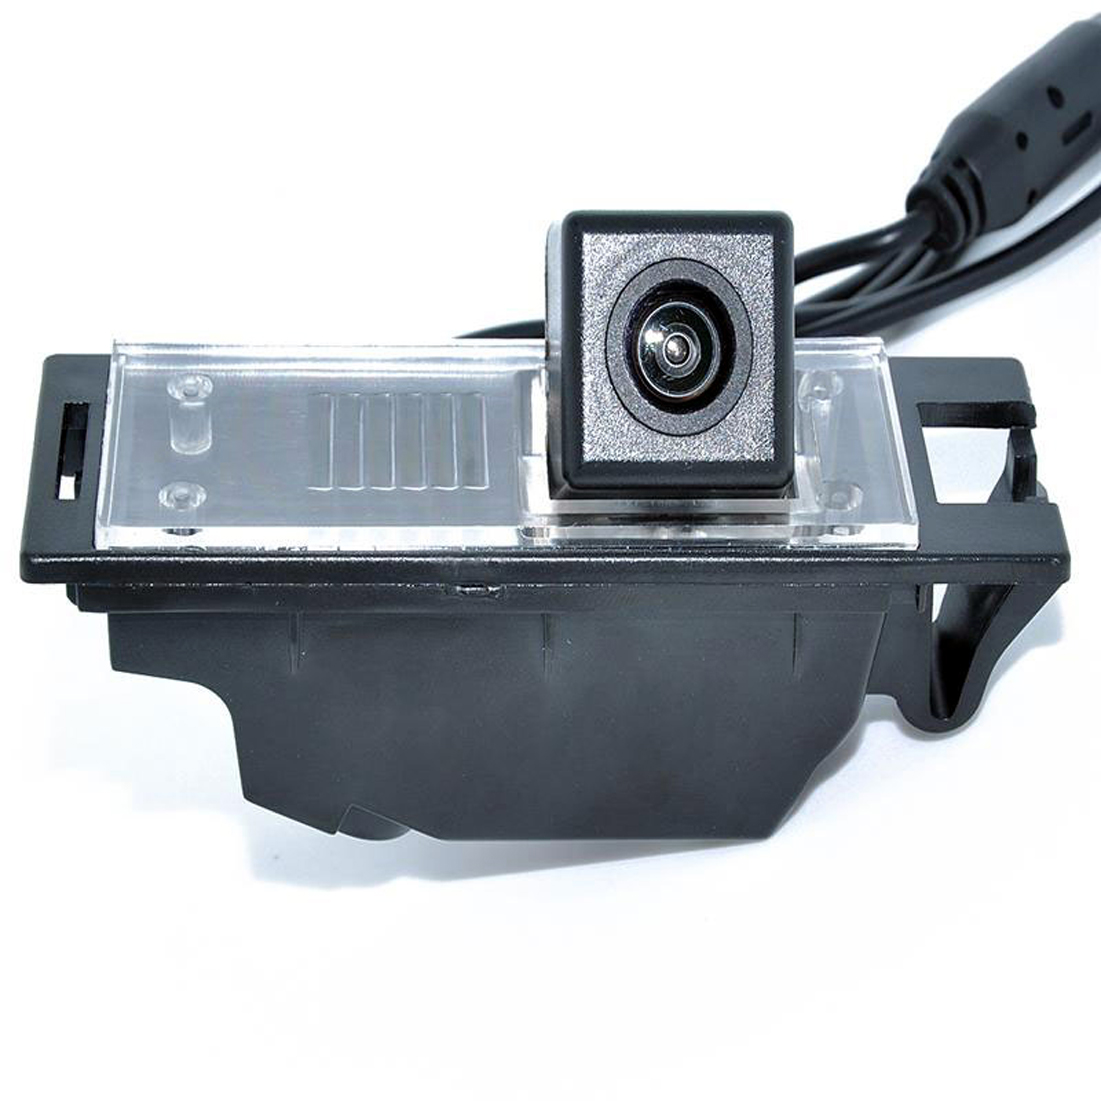 HD CCD Car Rear View Camera Reverse backup Parking Camera For Hyundai IX35 with wide viewing angle(China (Mainland))